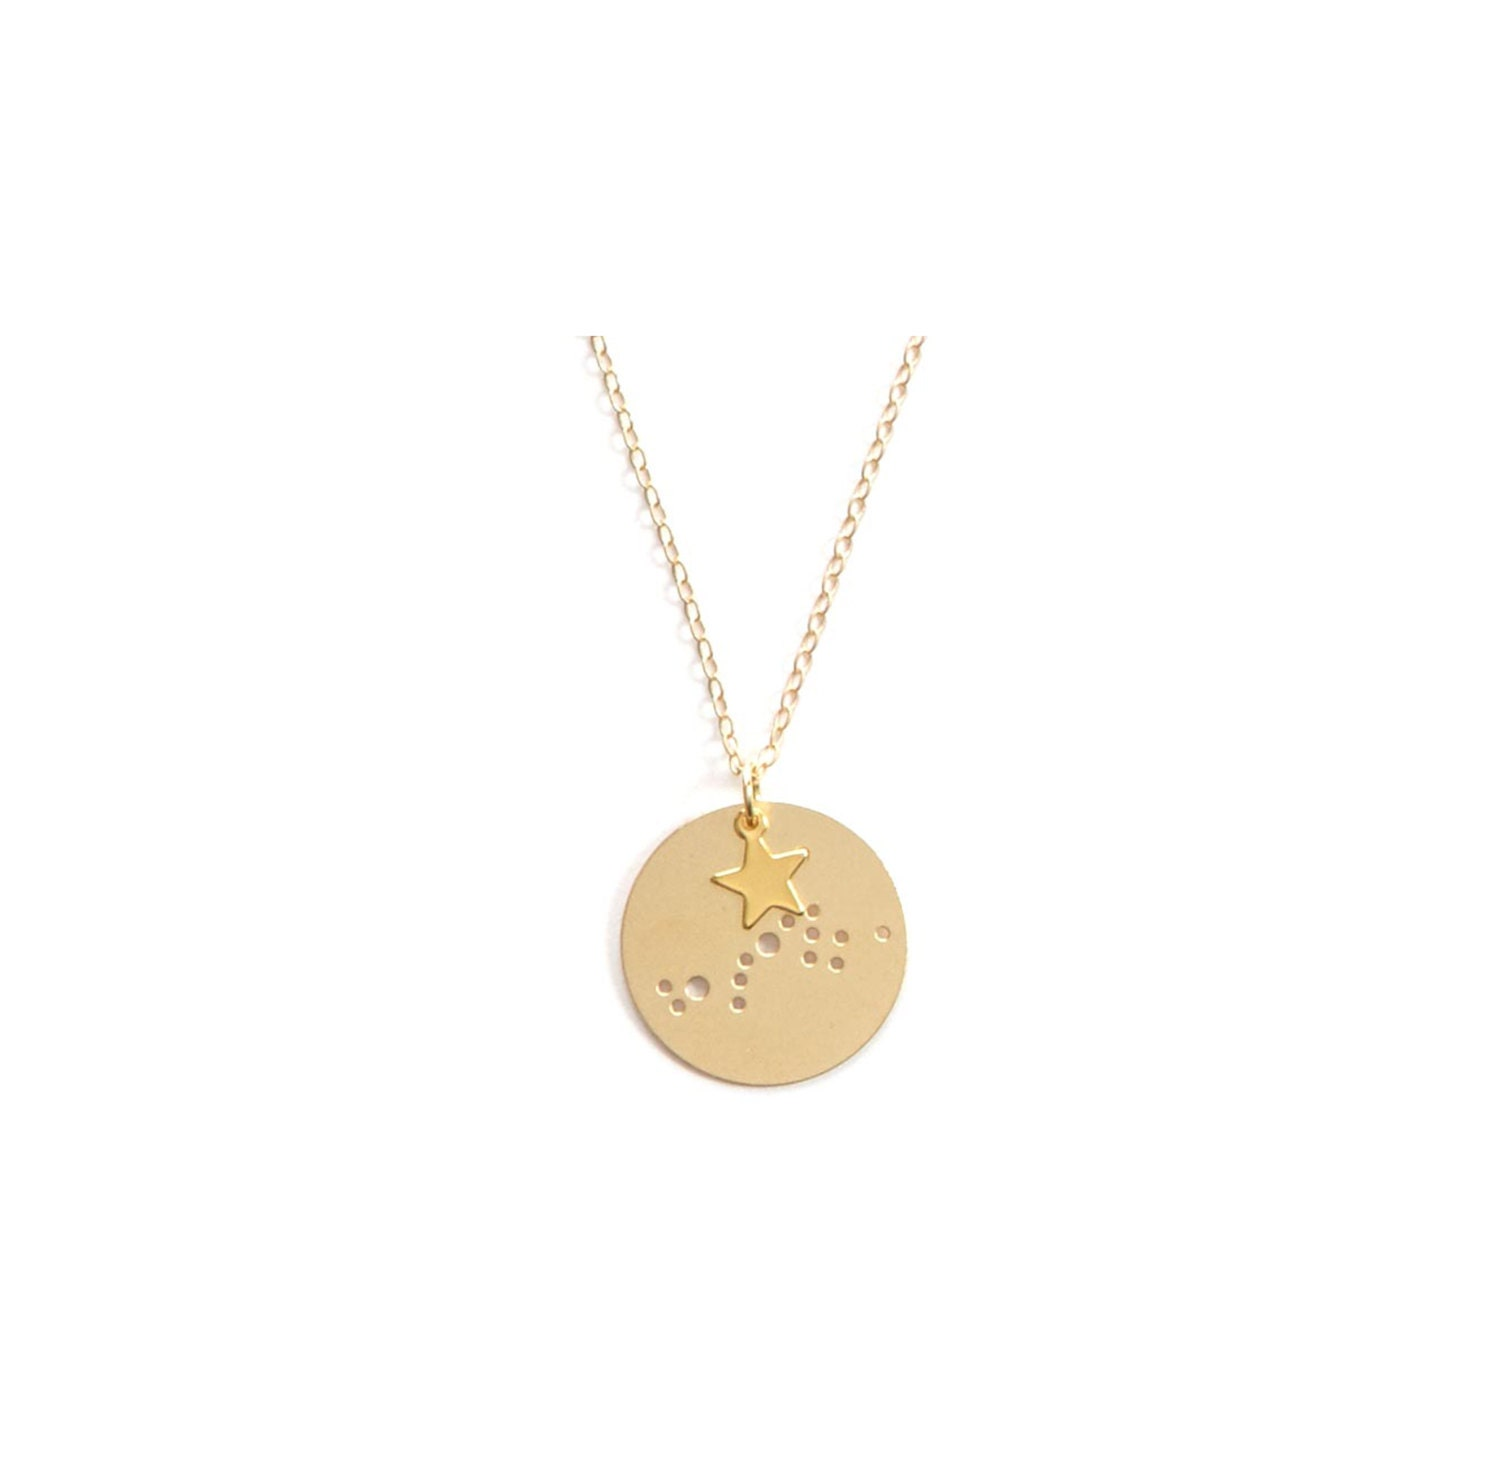 Scorpio 14kt Gold Dipped Zodiac Constellation Charm Necklace